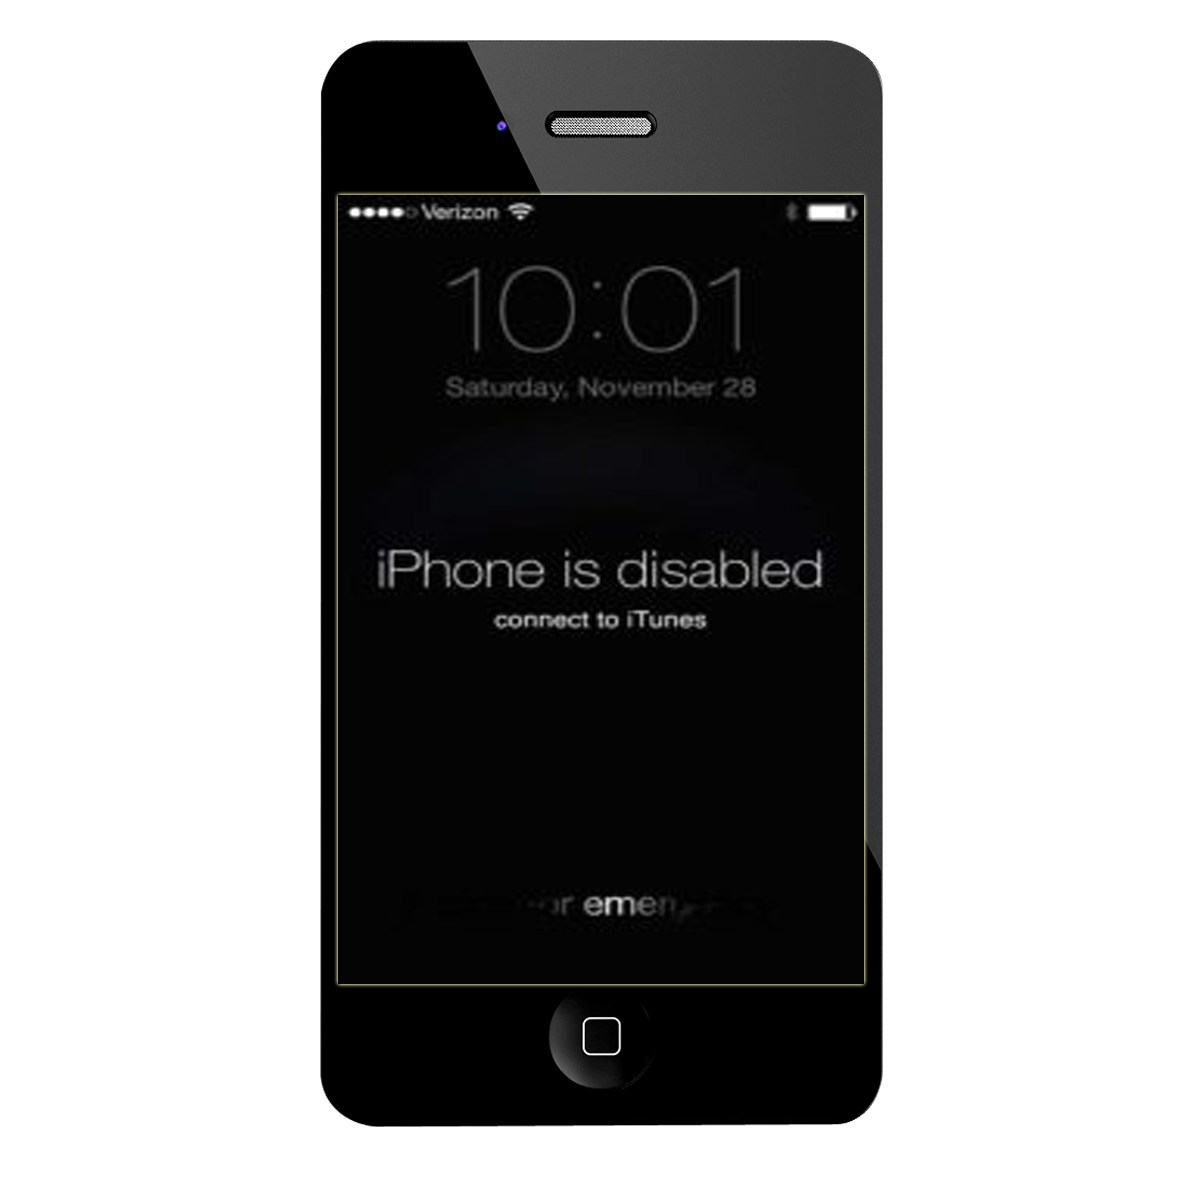 iphone is disabled connect to itunes iphone 5 حل مشكلة iphone is disabled connect to itunes لهاتف iphone 2964